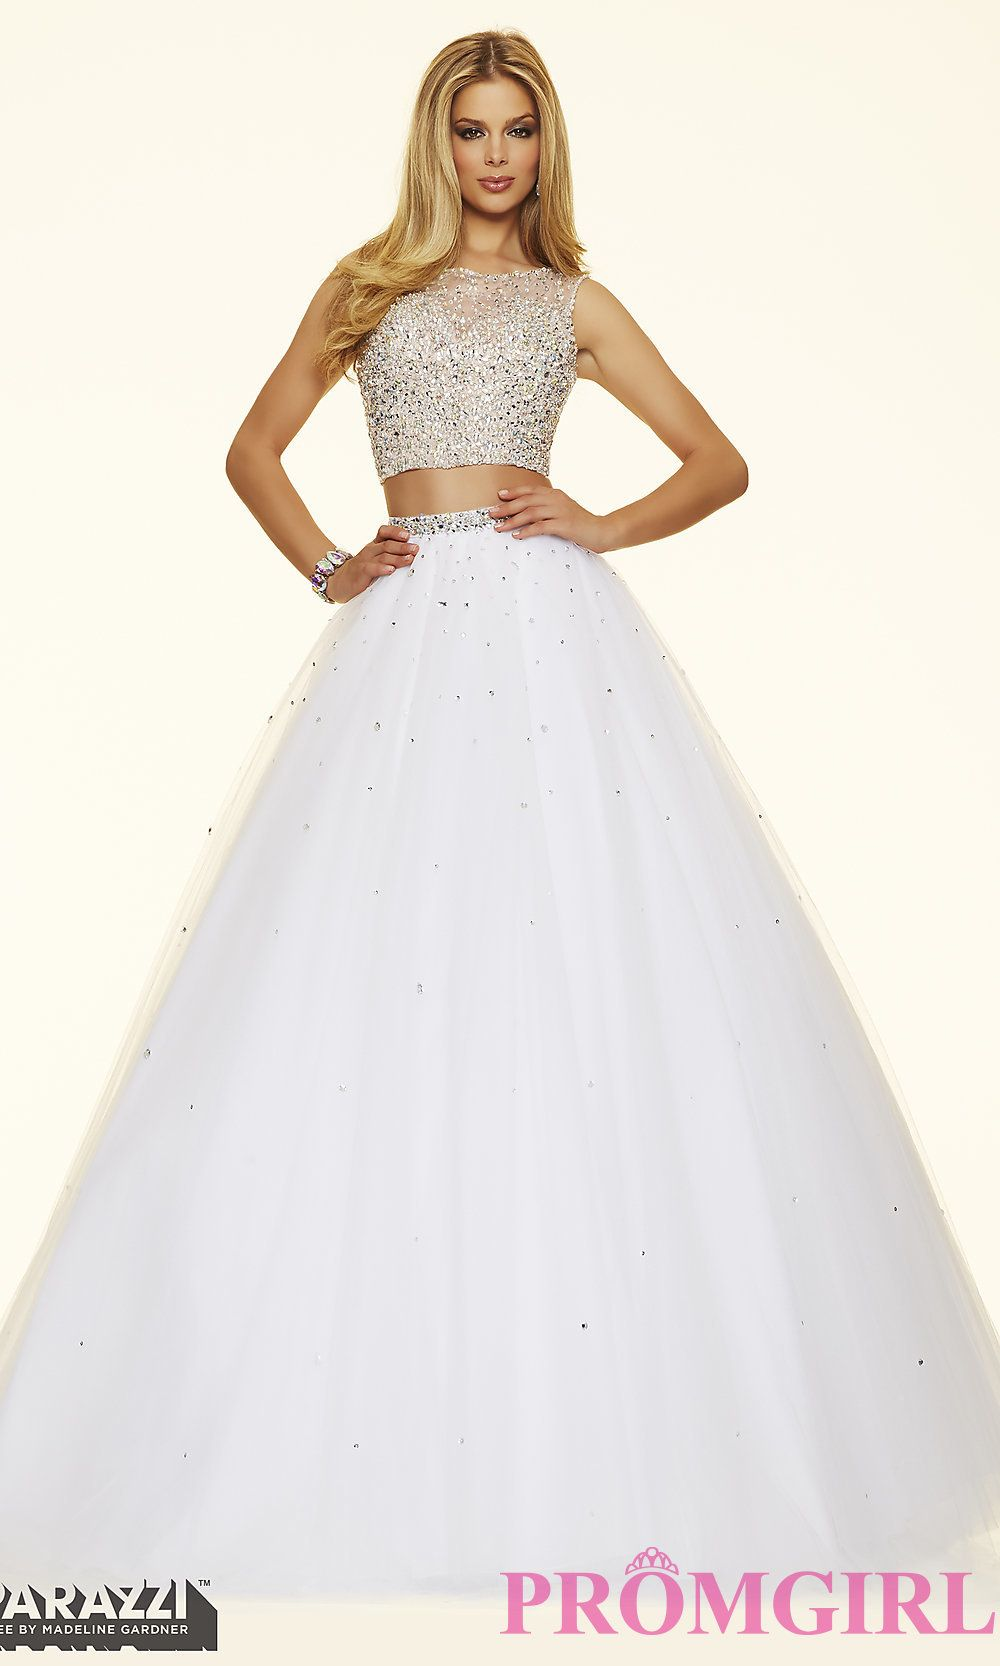 b6f0ff1207 Prom dresses by Paparazzi Prom 2 Piece Crystal Beaded Tulle Ball Gown  Zipper Back Closure. Colors Available  Aqua